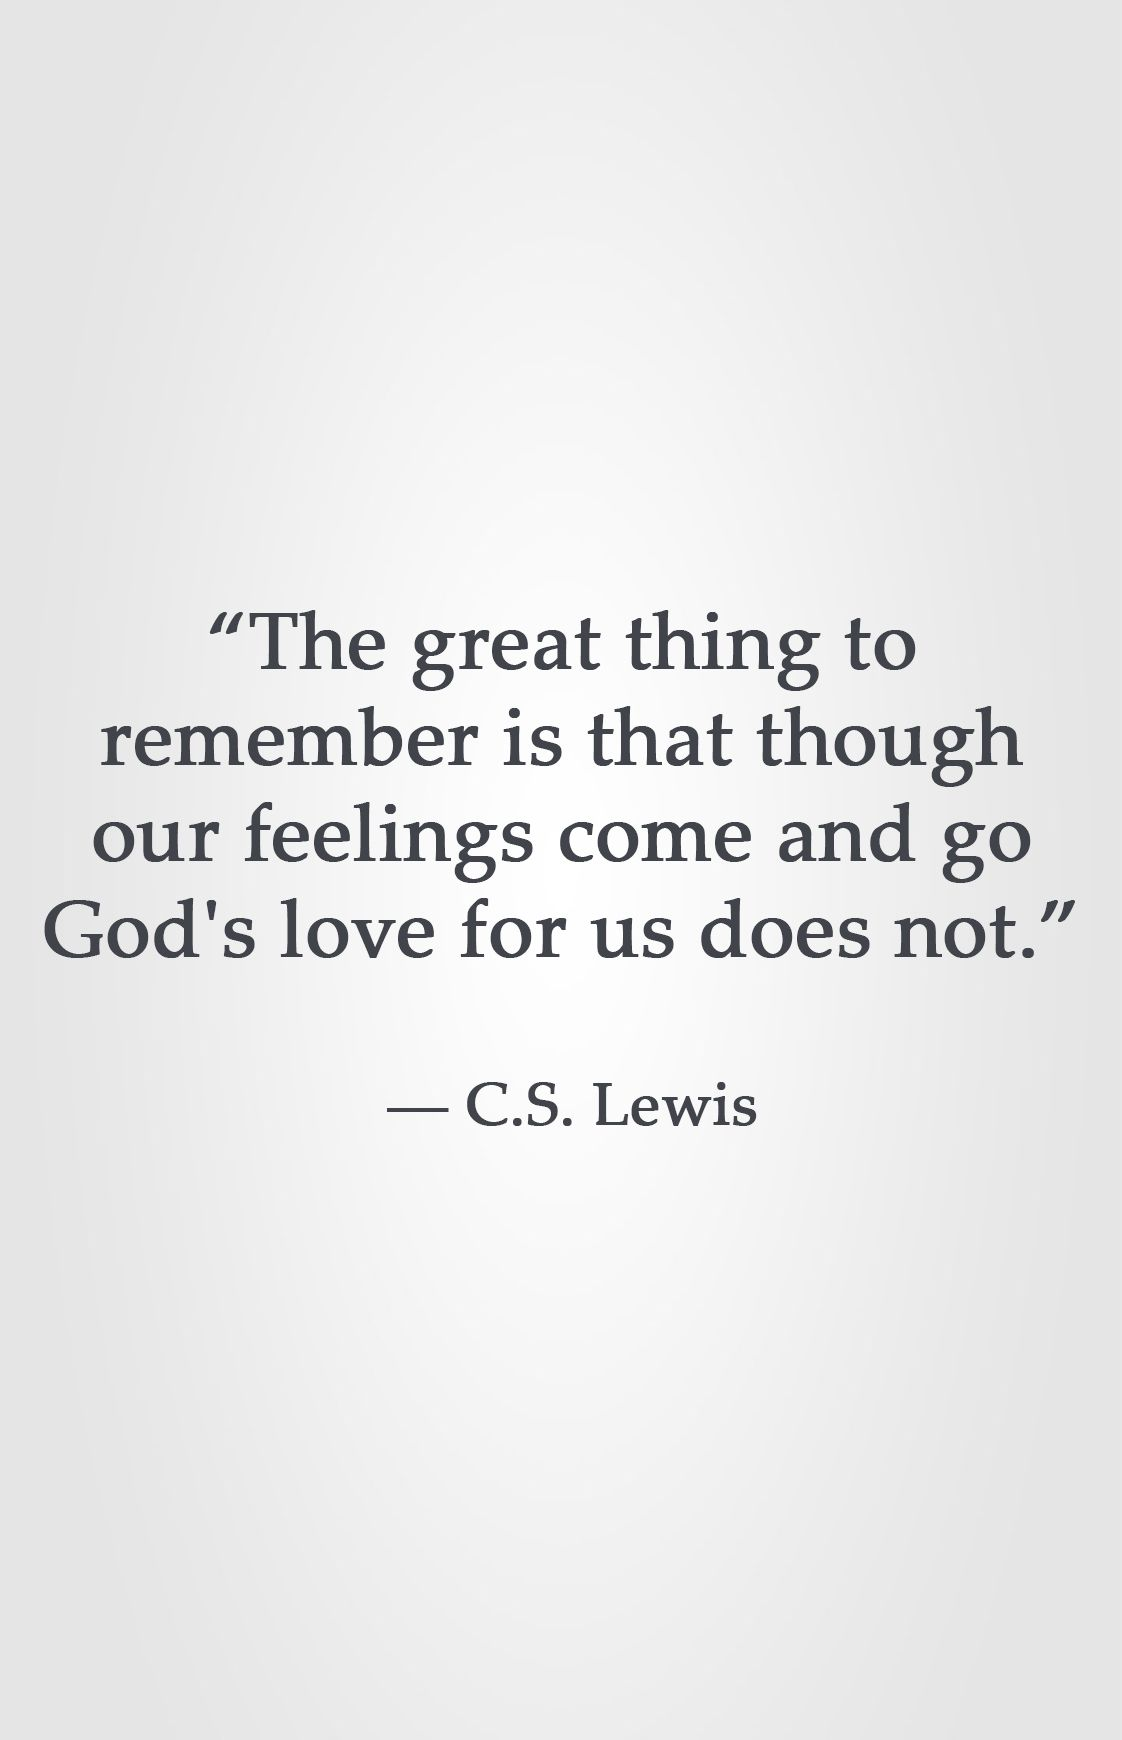 Quotes About God's Love The Great Thing To Remember Is That Though Our Feelings Come And Go